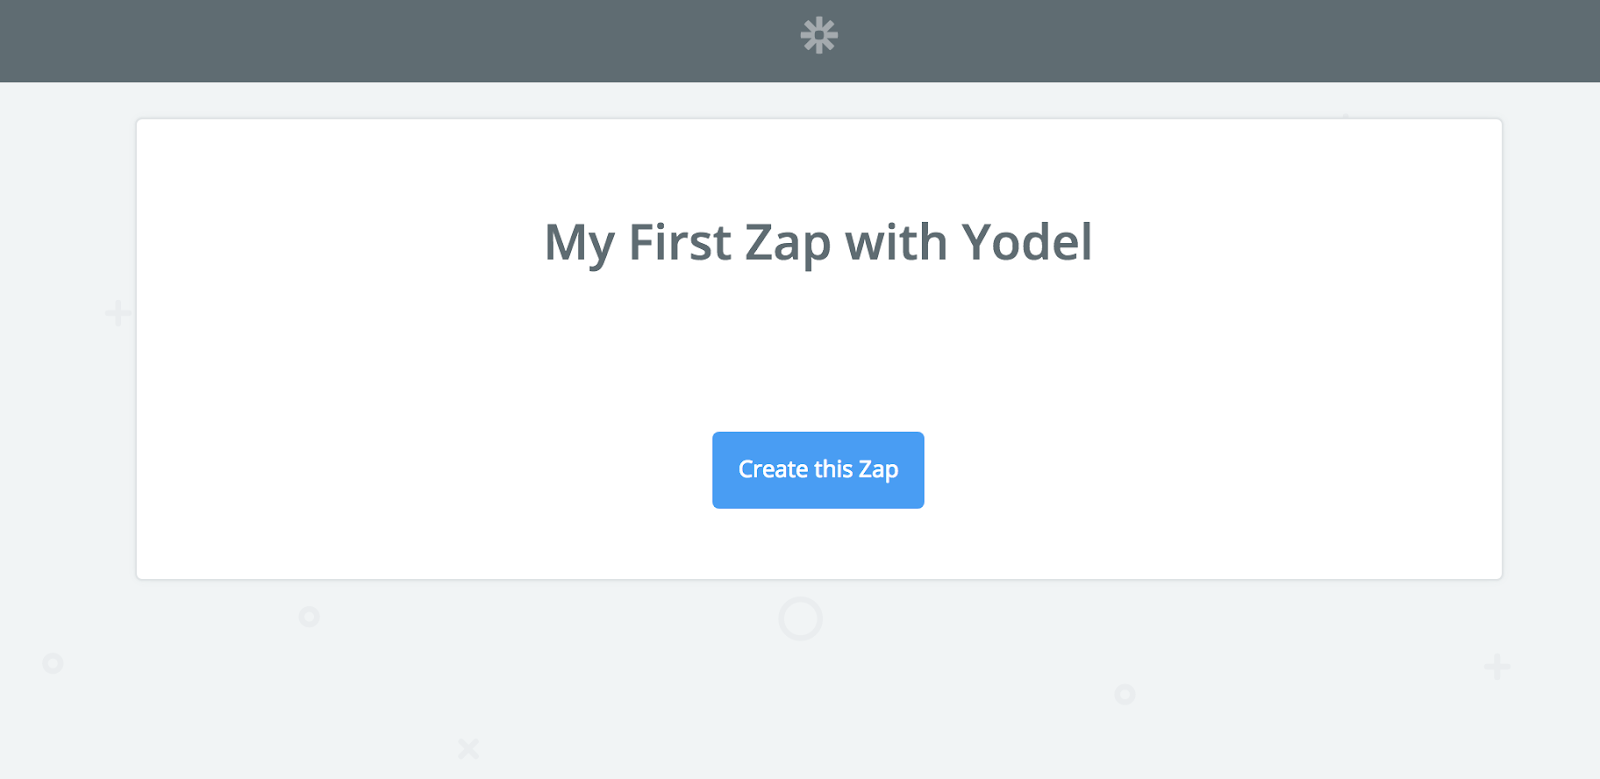 My First Zap with Yodel